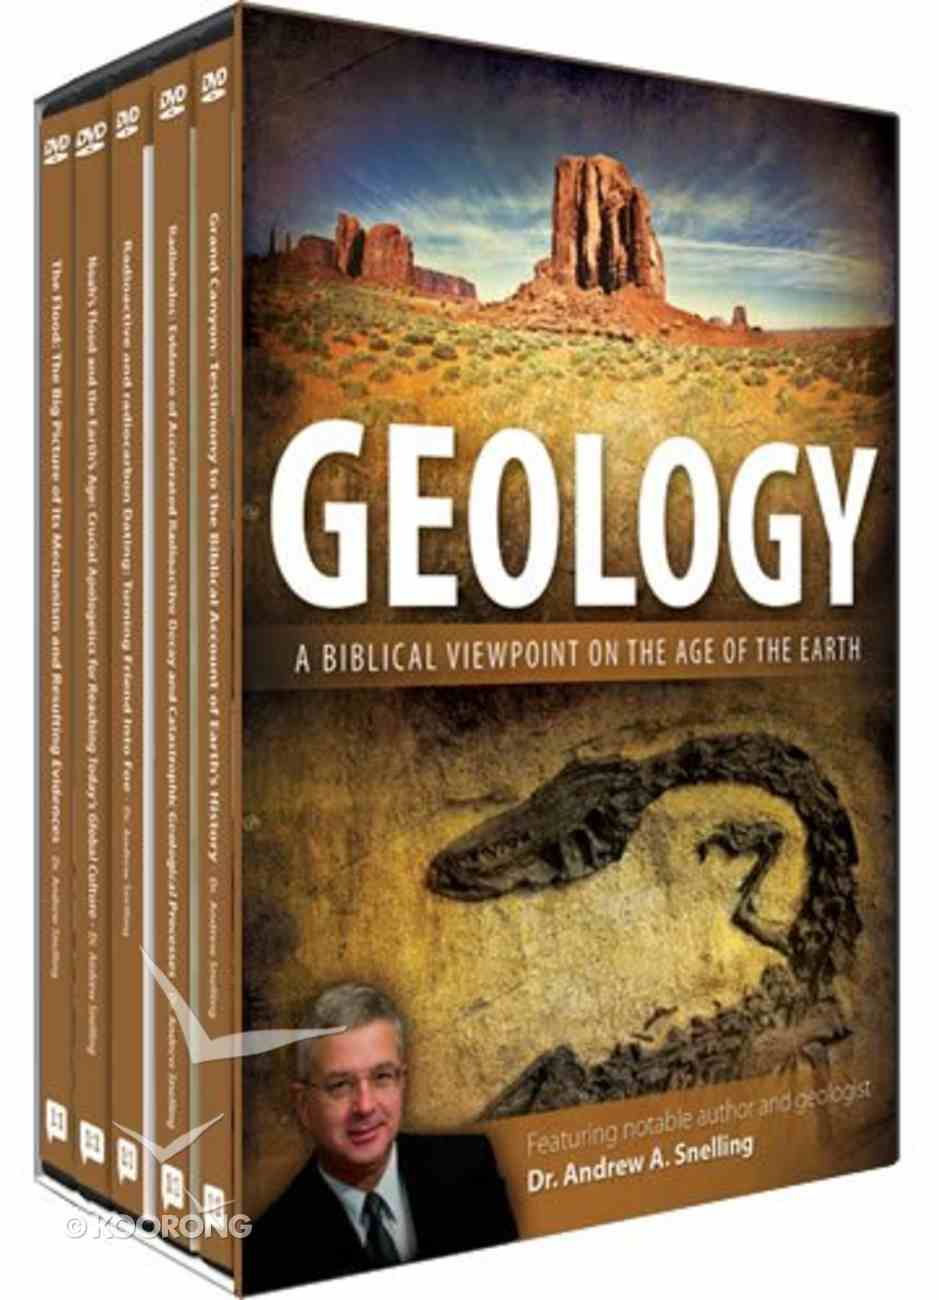 Geology: A Biblical Viewpoint on the Earth DVD